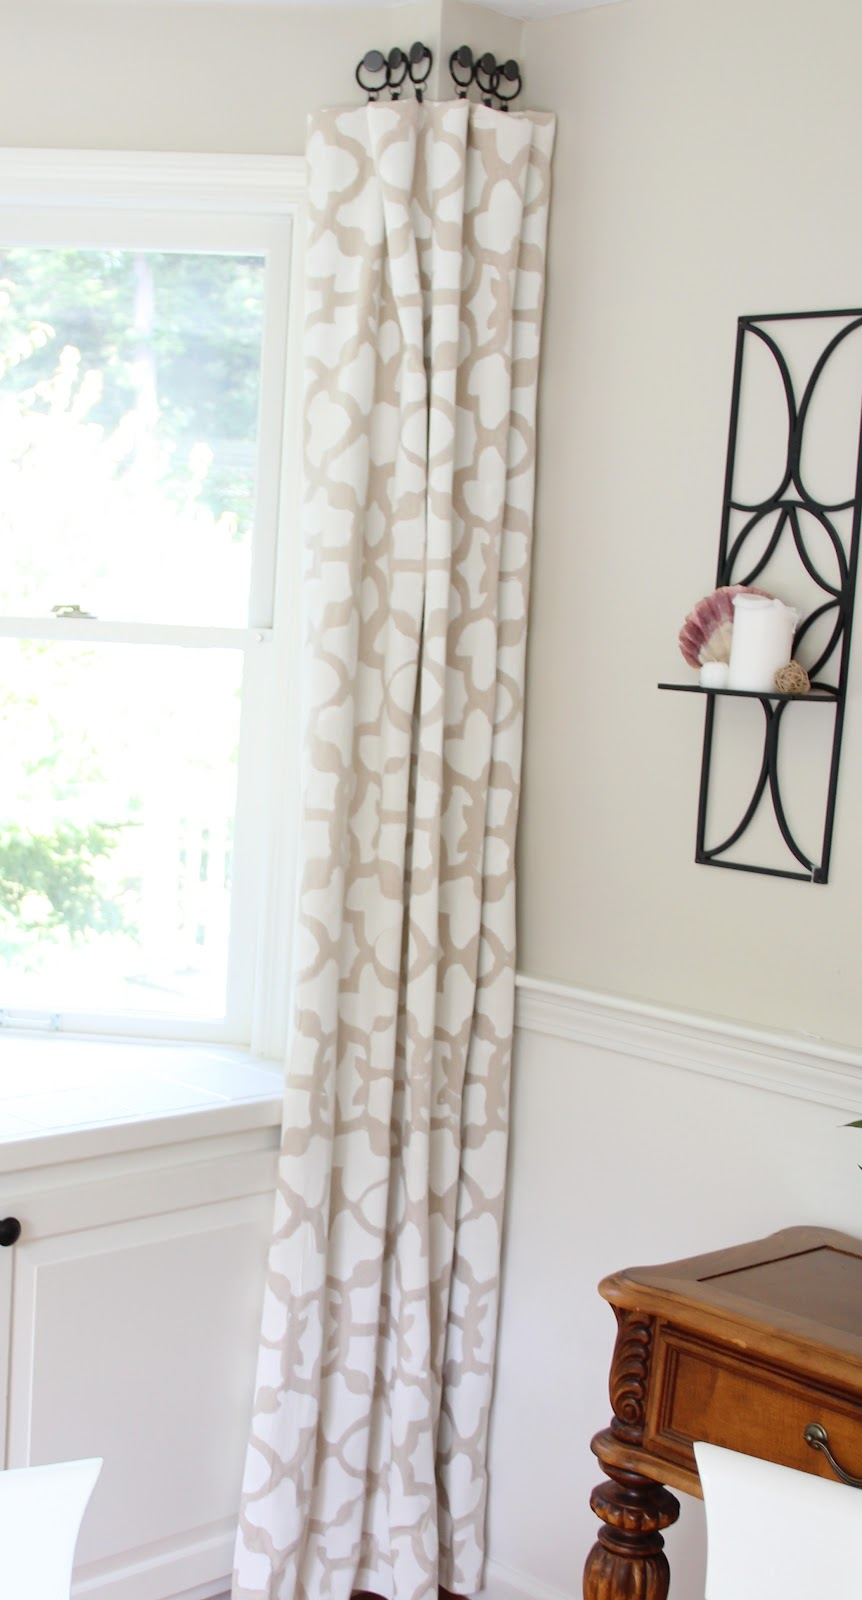 Drop Cloth Curtains Tutorial Stenciled Drop Cloth Curtain Tutorial Shine Your Light